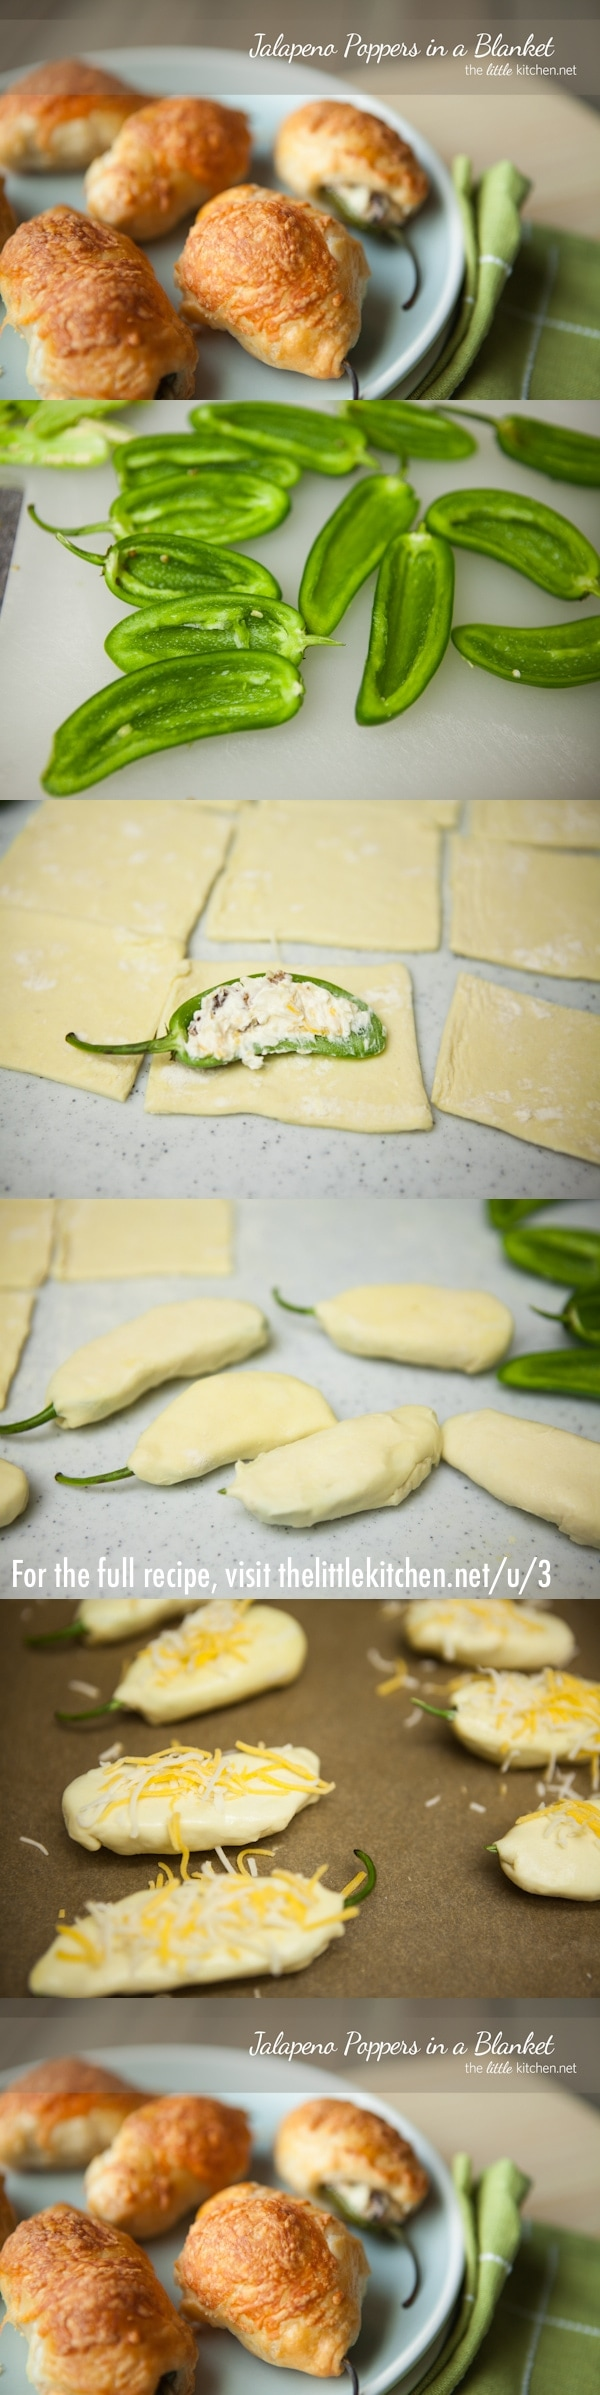 Jalapeno Poppers in a Blanket from thelittlekitchen.net